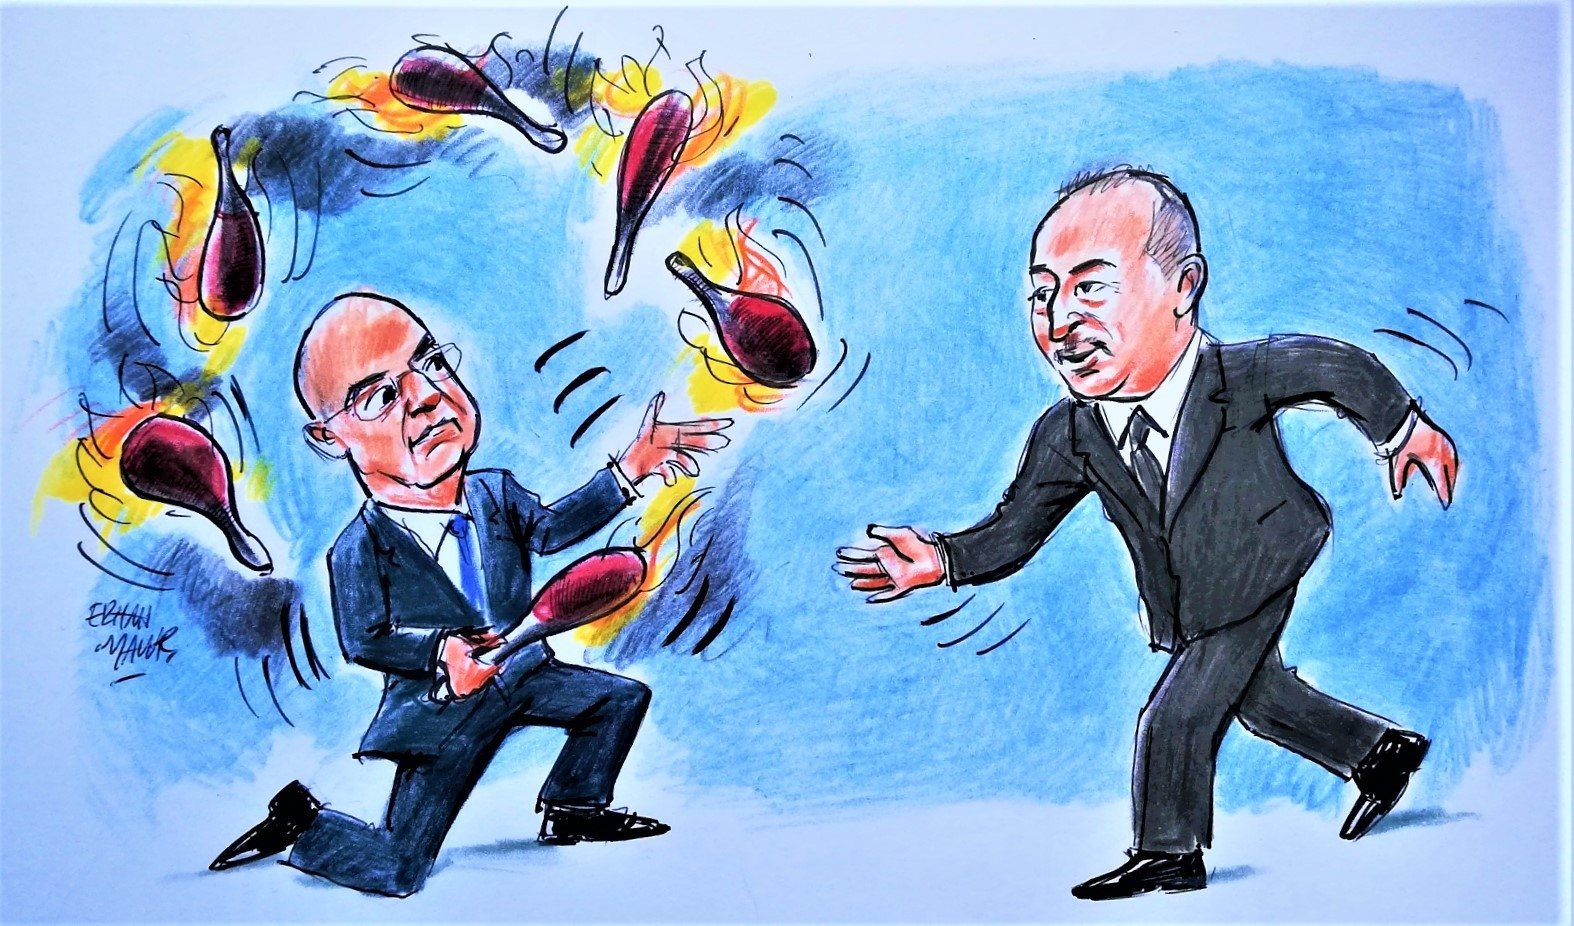 This illustration by Erhan Yalvaç shows Foreign Minister Mevlüt Çavuşoğlu (R) approaching his Greek counterpart Nikos Dendias, who is juggling, and criticizes the ongoing tension between Turkey and Greece.